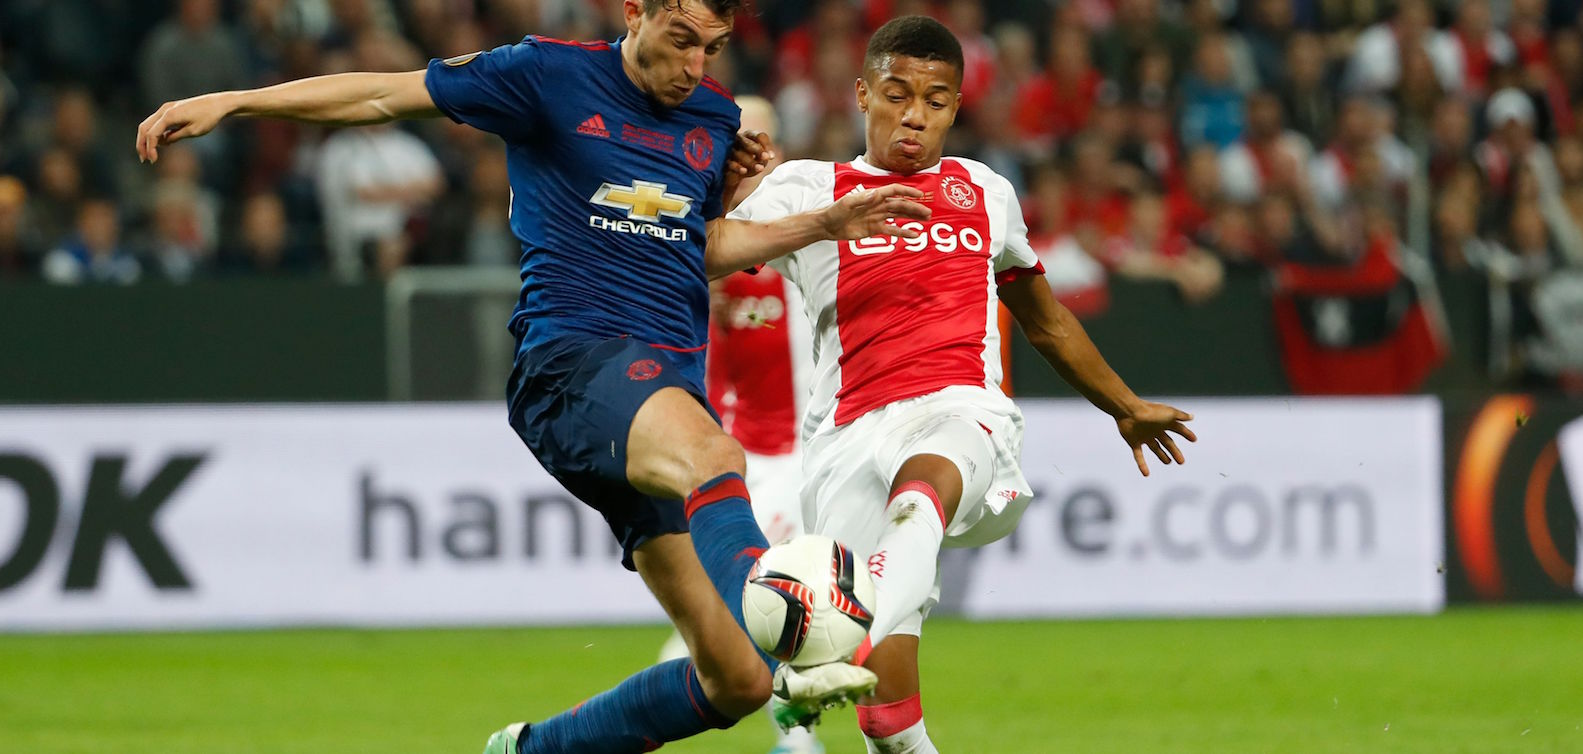 Manchester United hope to swap Matteo Darmian with Alex Sandro this summer: report